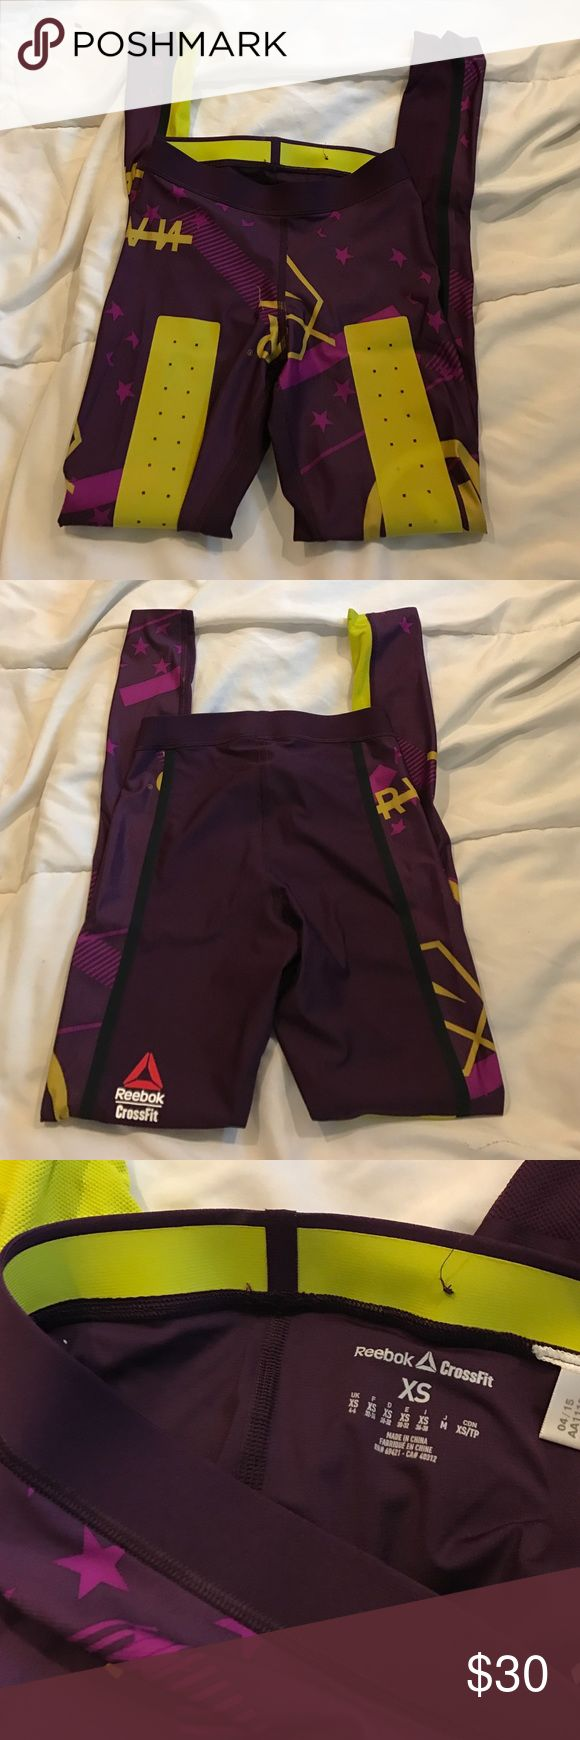 2015 Reebok CrossFit Games compression pants. Never worn compression pants from the 2015 CrossFit Games. Very limited and was only available for the games athletes. Reebok Pants Skinny